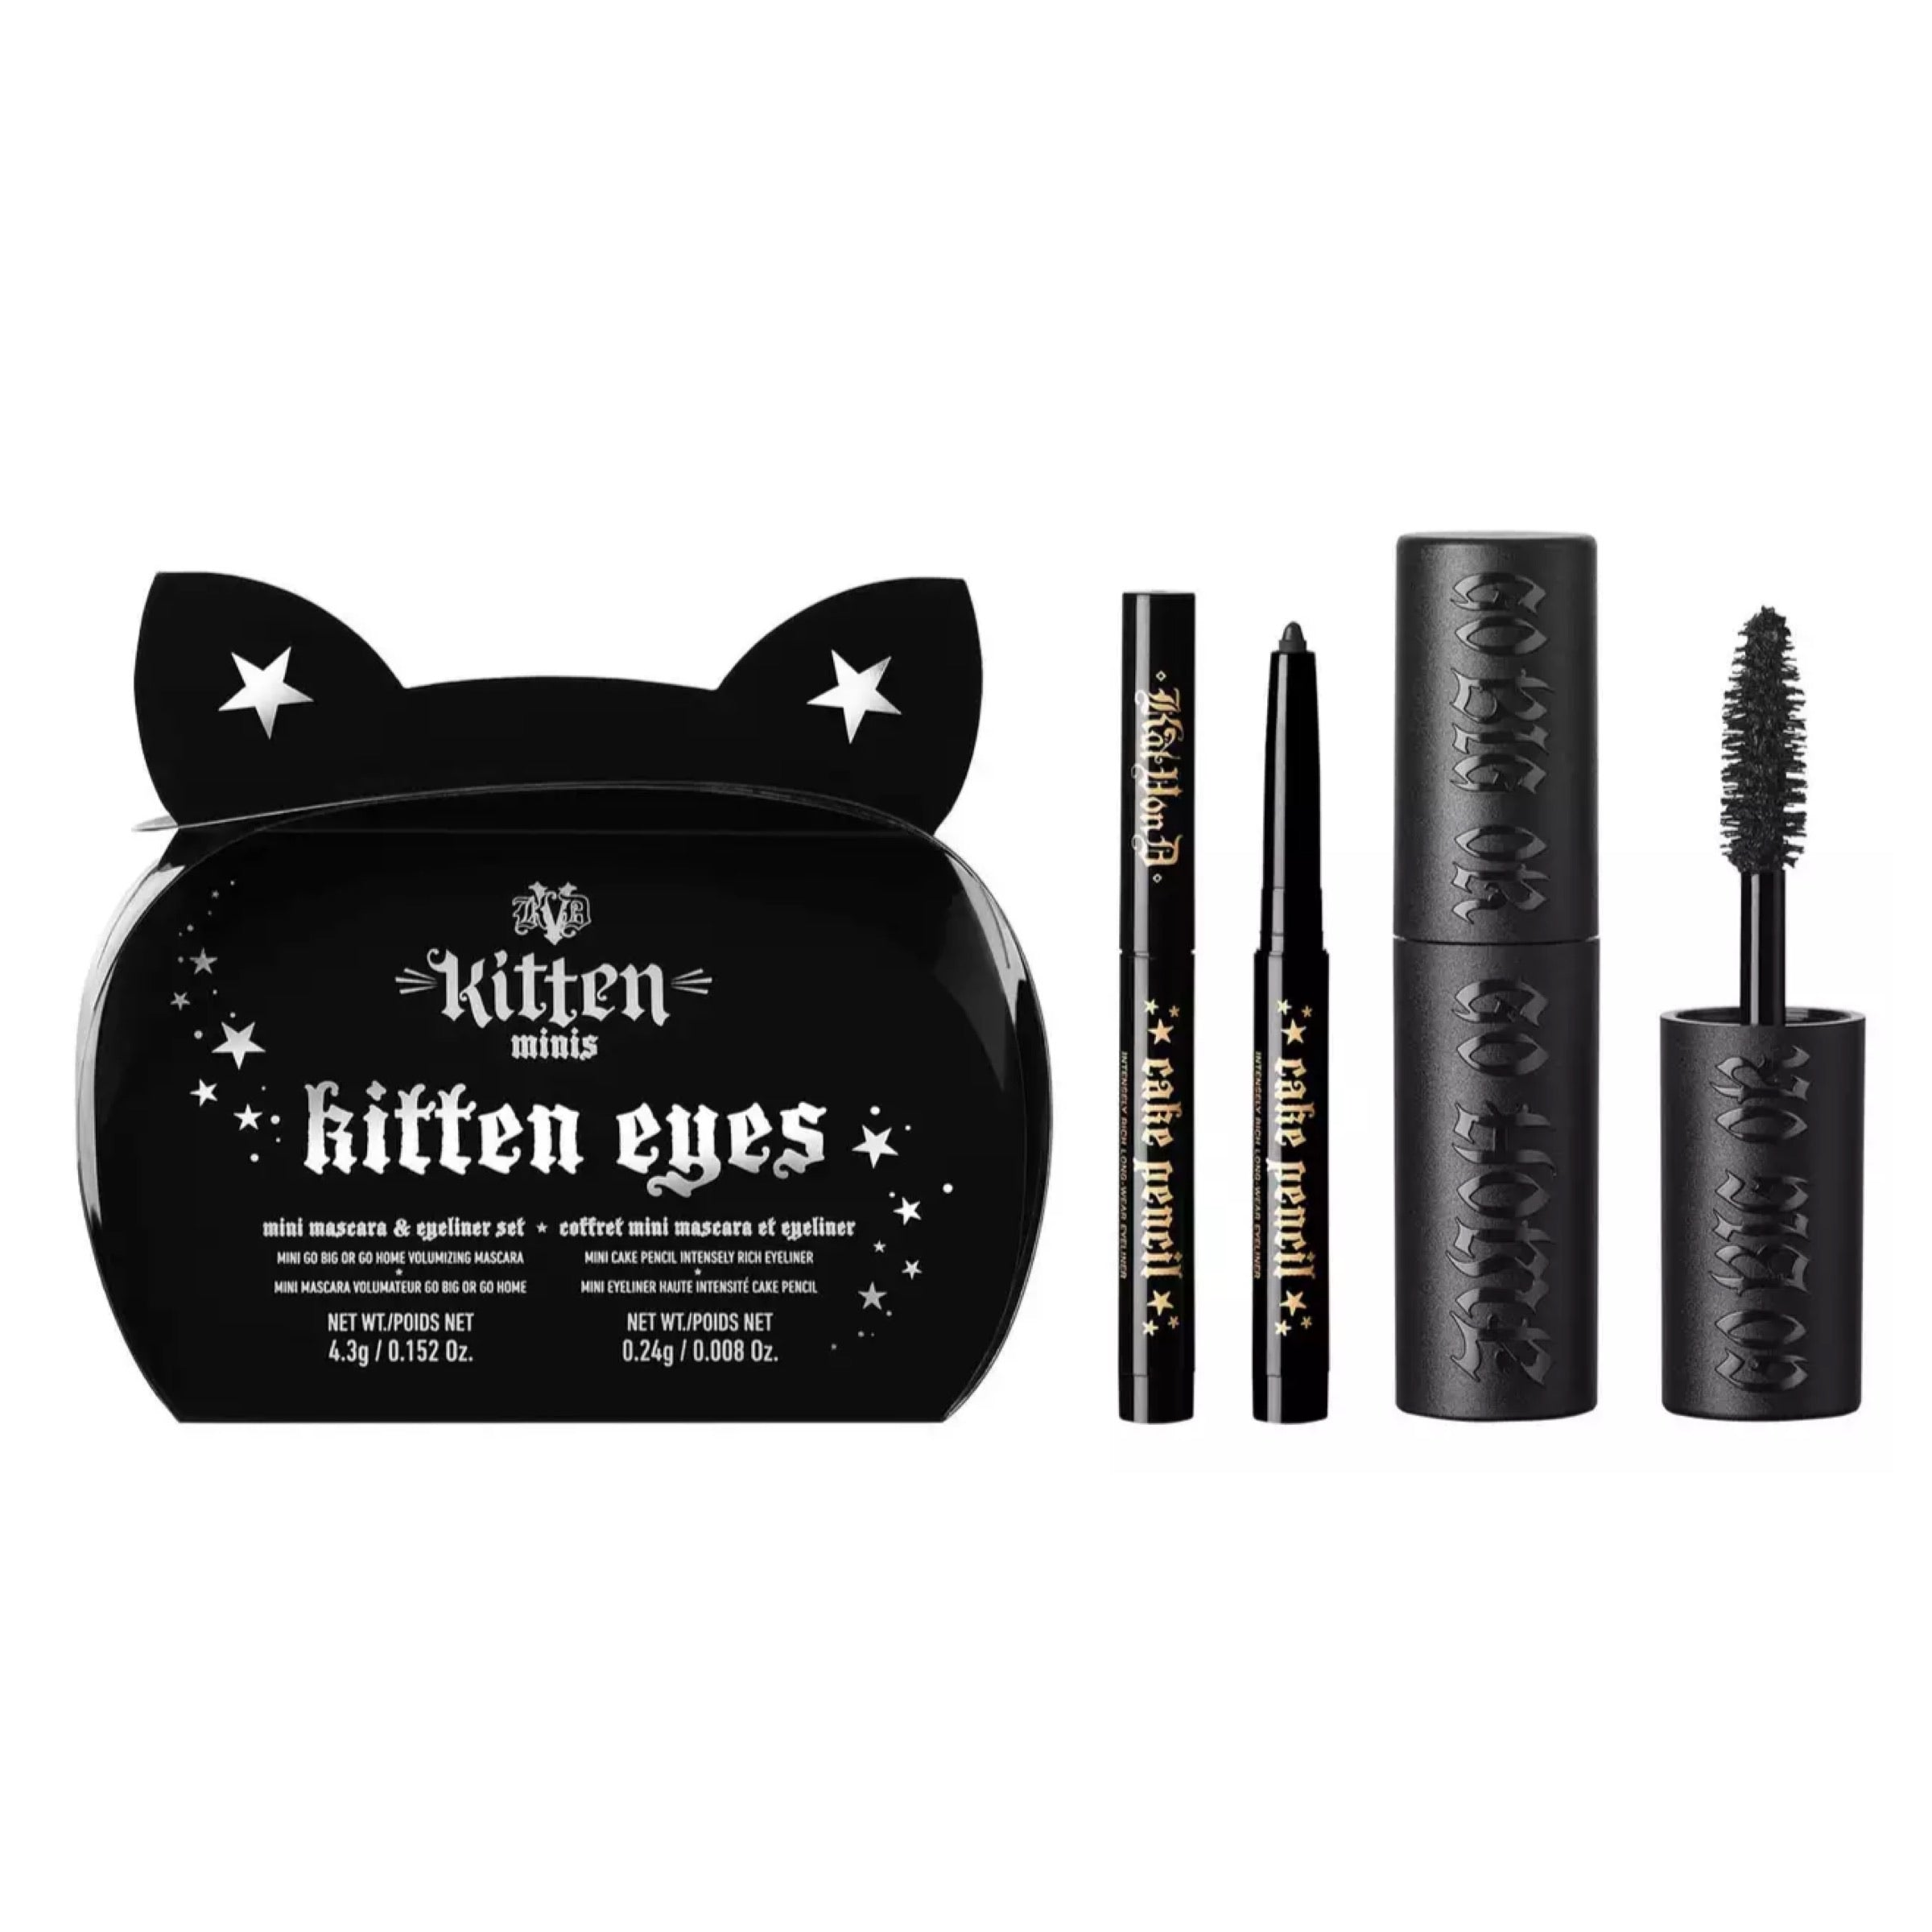 KVD Vegan Beauty - 'Kitten Eyes' Miniature Size Eye Makeup Gift Set, Travel Kit, London Loves Beauty